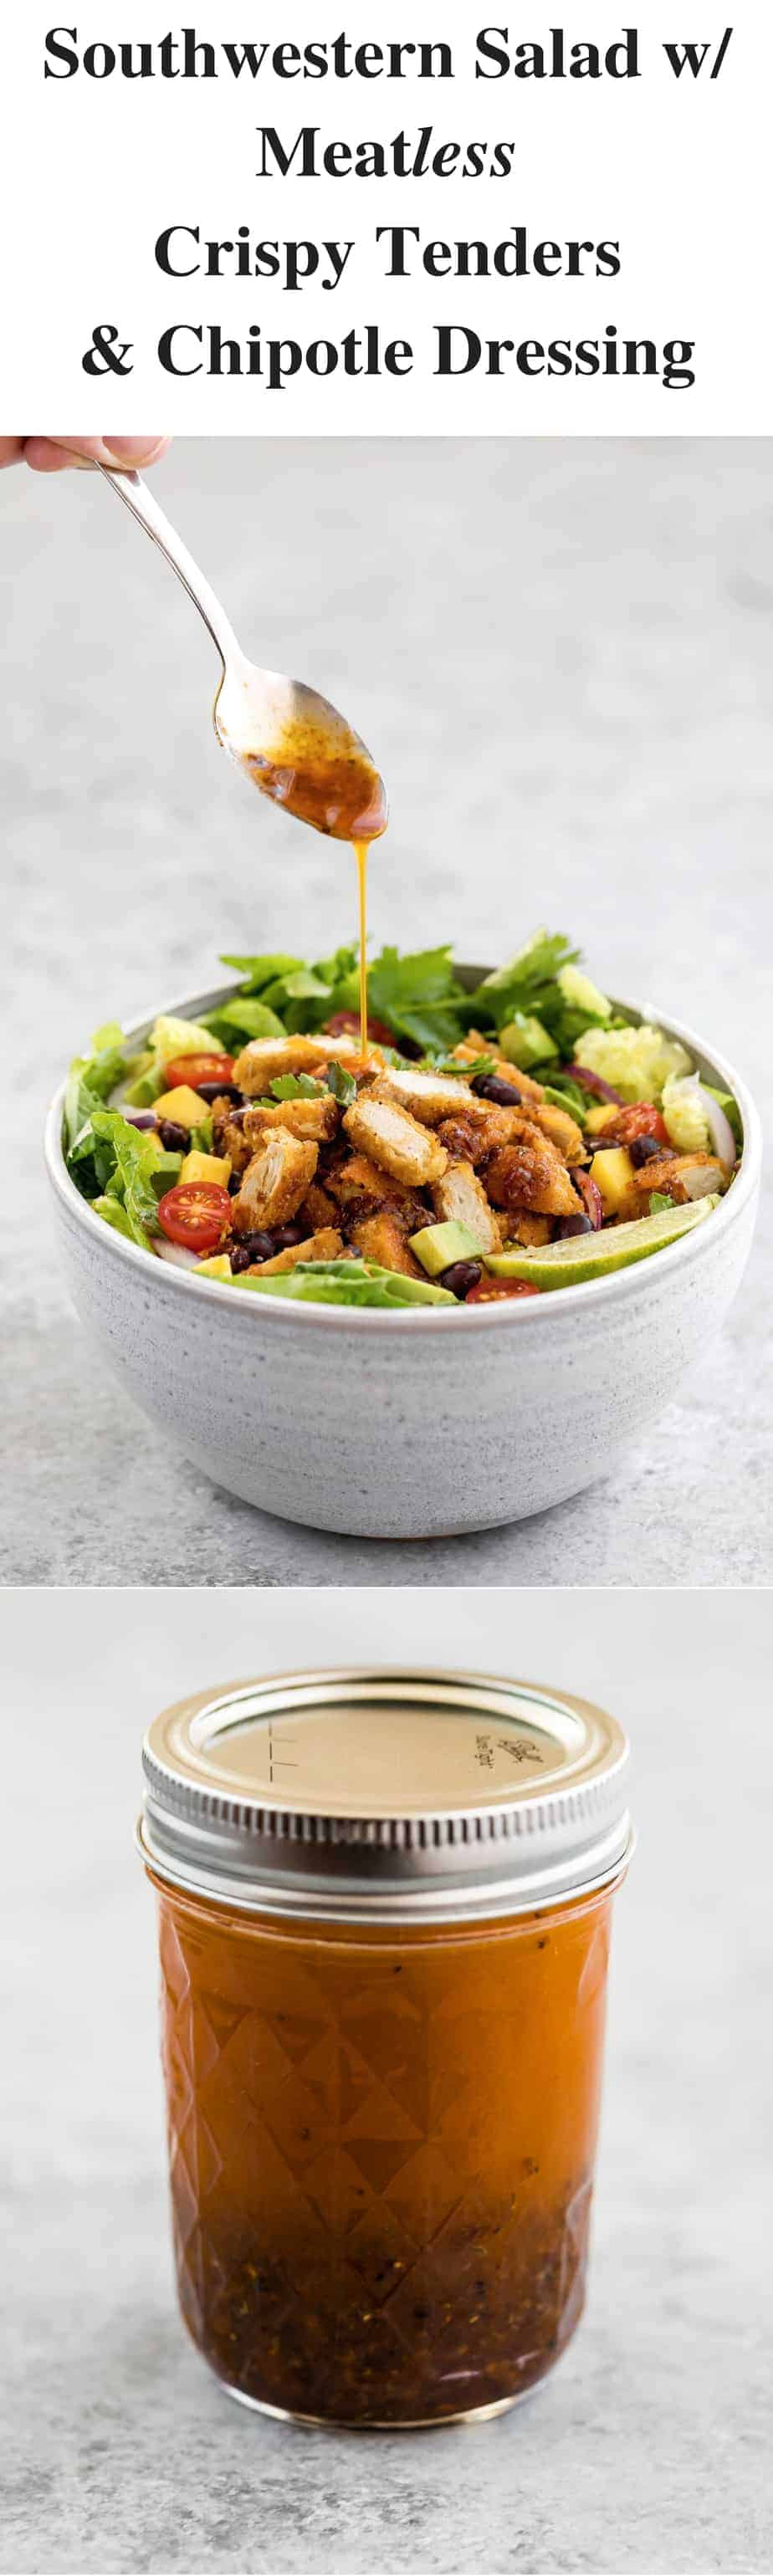 southwestern gardein crispy tenders salad with chipotle dressing